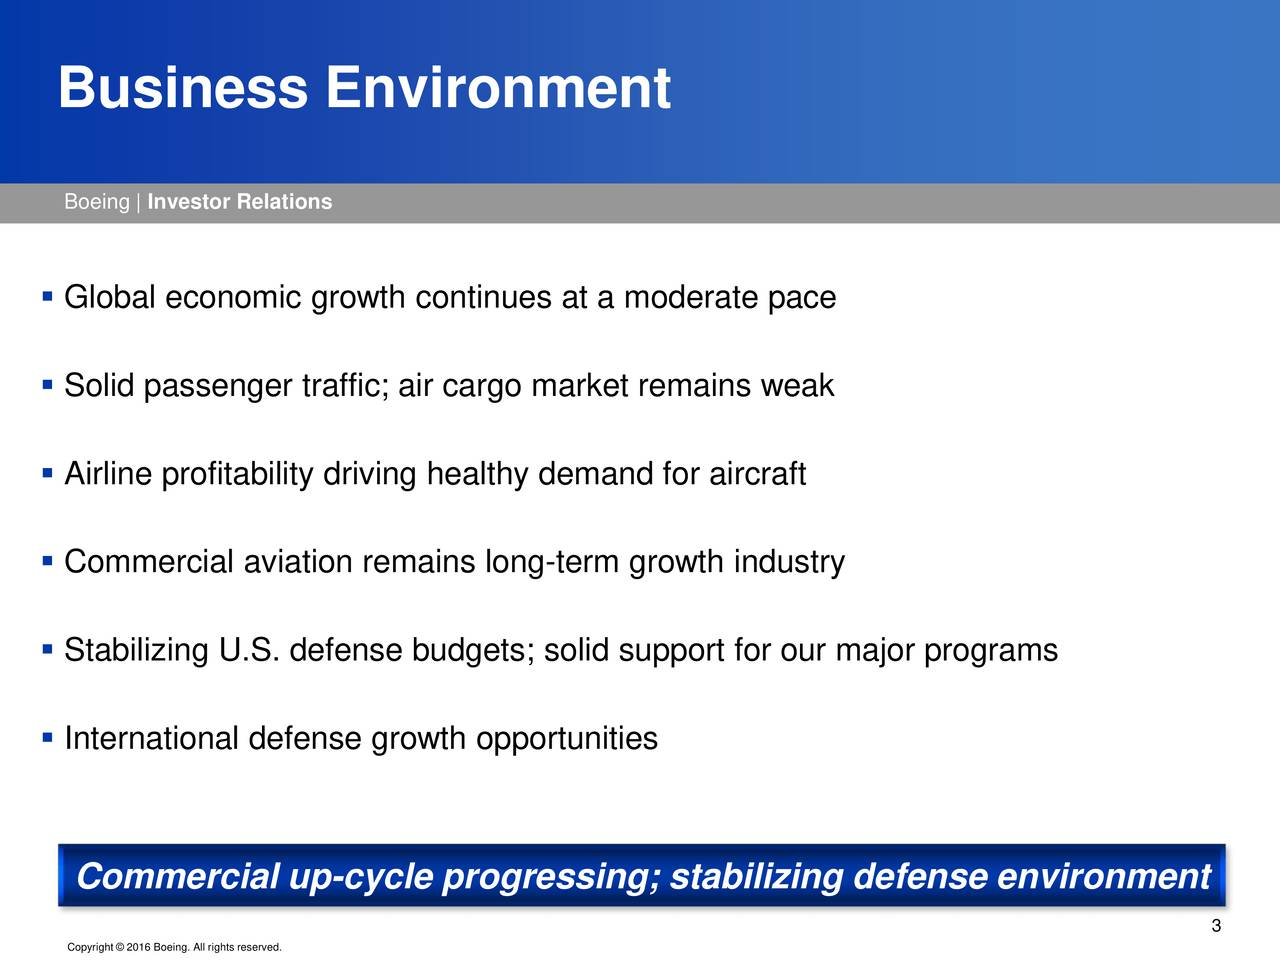 Boeing   Investor Relations Global economic growth continues at a moderate pace Solid passenger traffic; air cargo market remains weak Airline profitability driving healthy demand for aircraft Commercial aviation remains long-term growth industry Stabilizing U.S. defense budgets; solid support for our major programs International defense growth opportunities Commercial up-cycle progressing; stabilizing defense environment 3